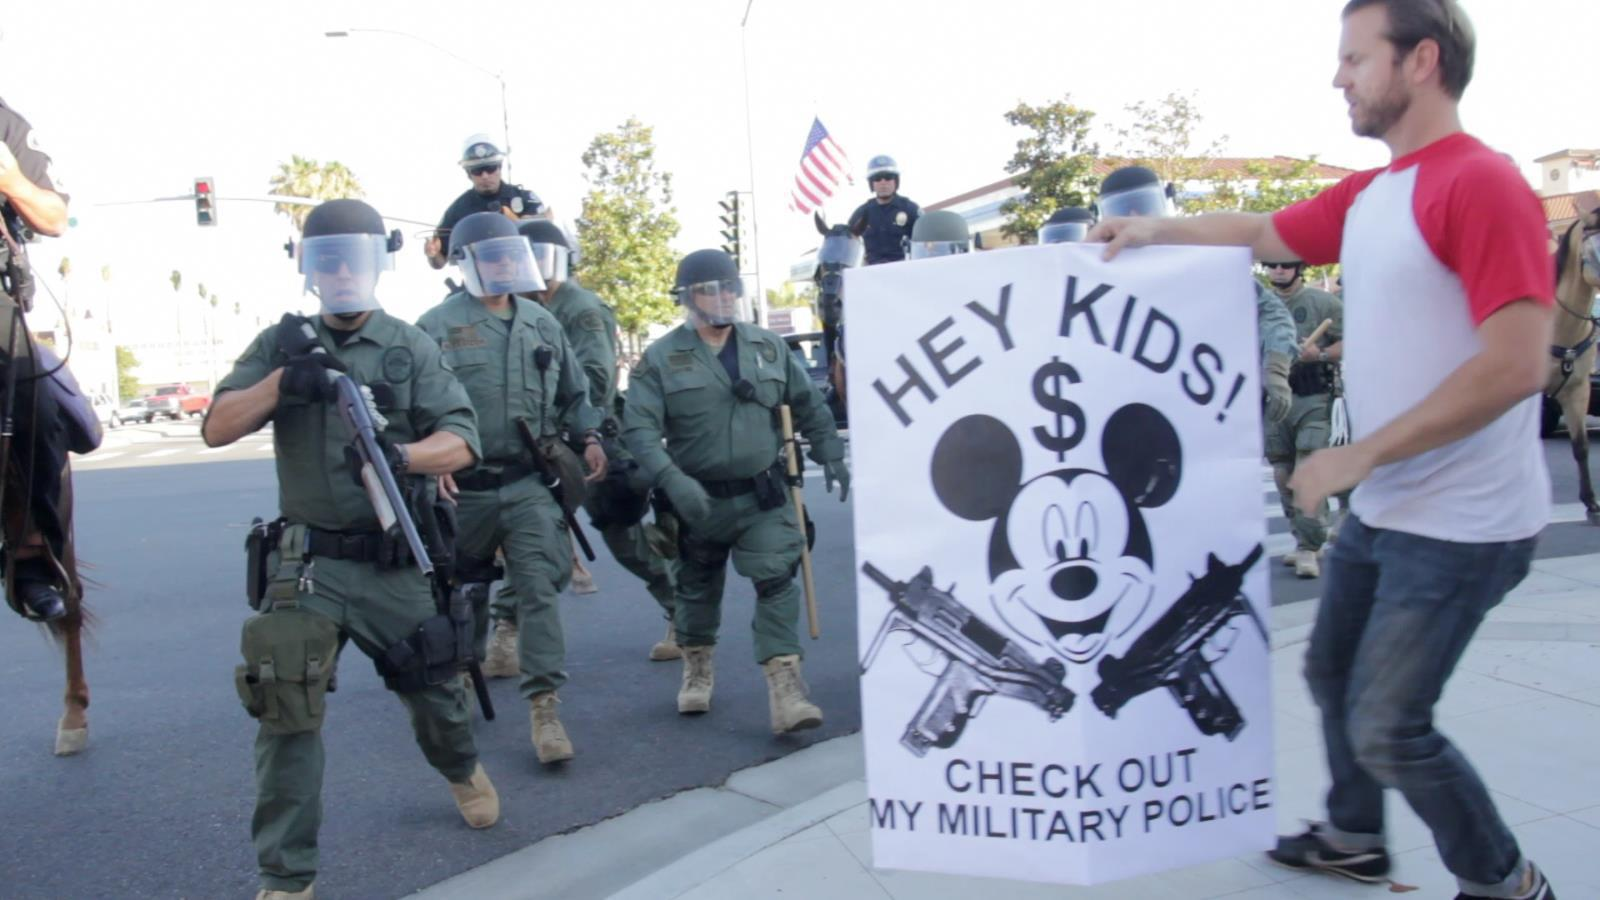 Hey Kids, check out my militarized police